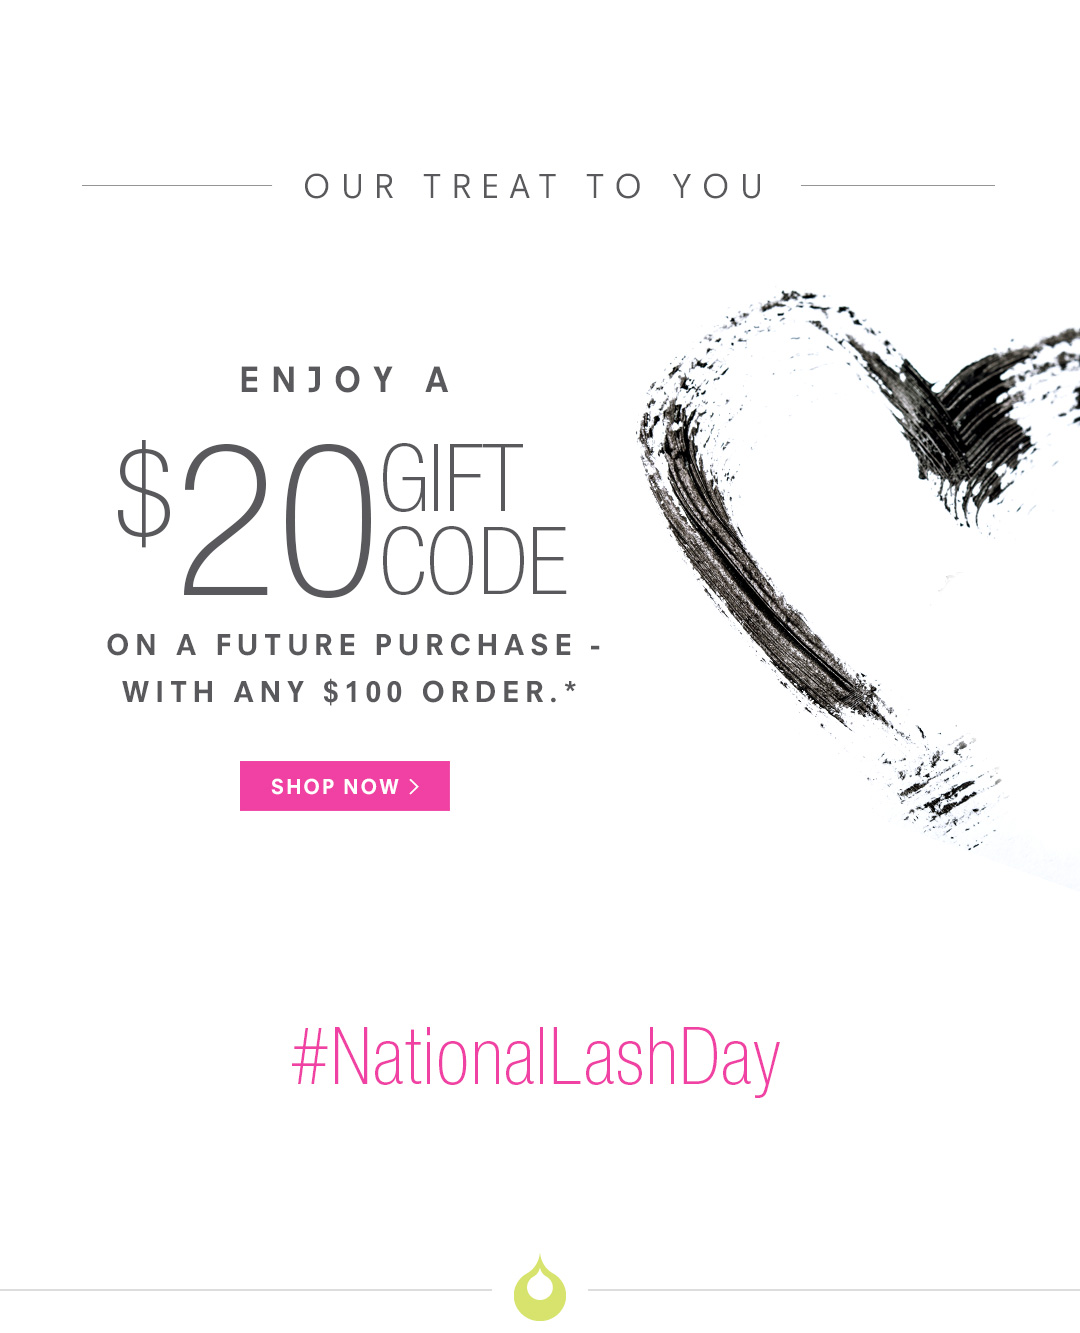 Enjoy a $20 gift code with $100 purchase.*